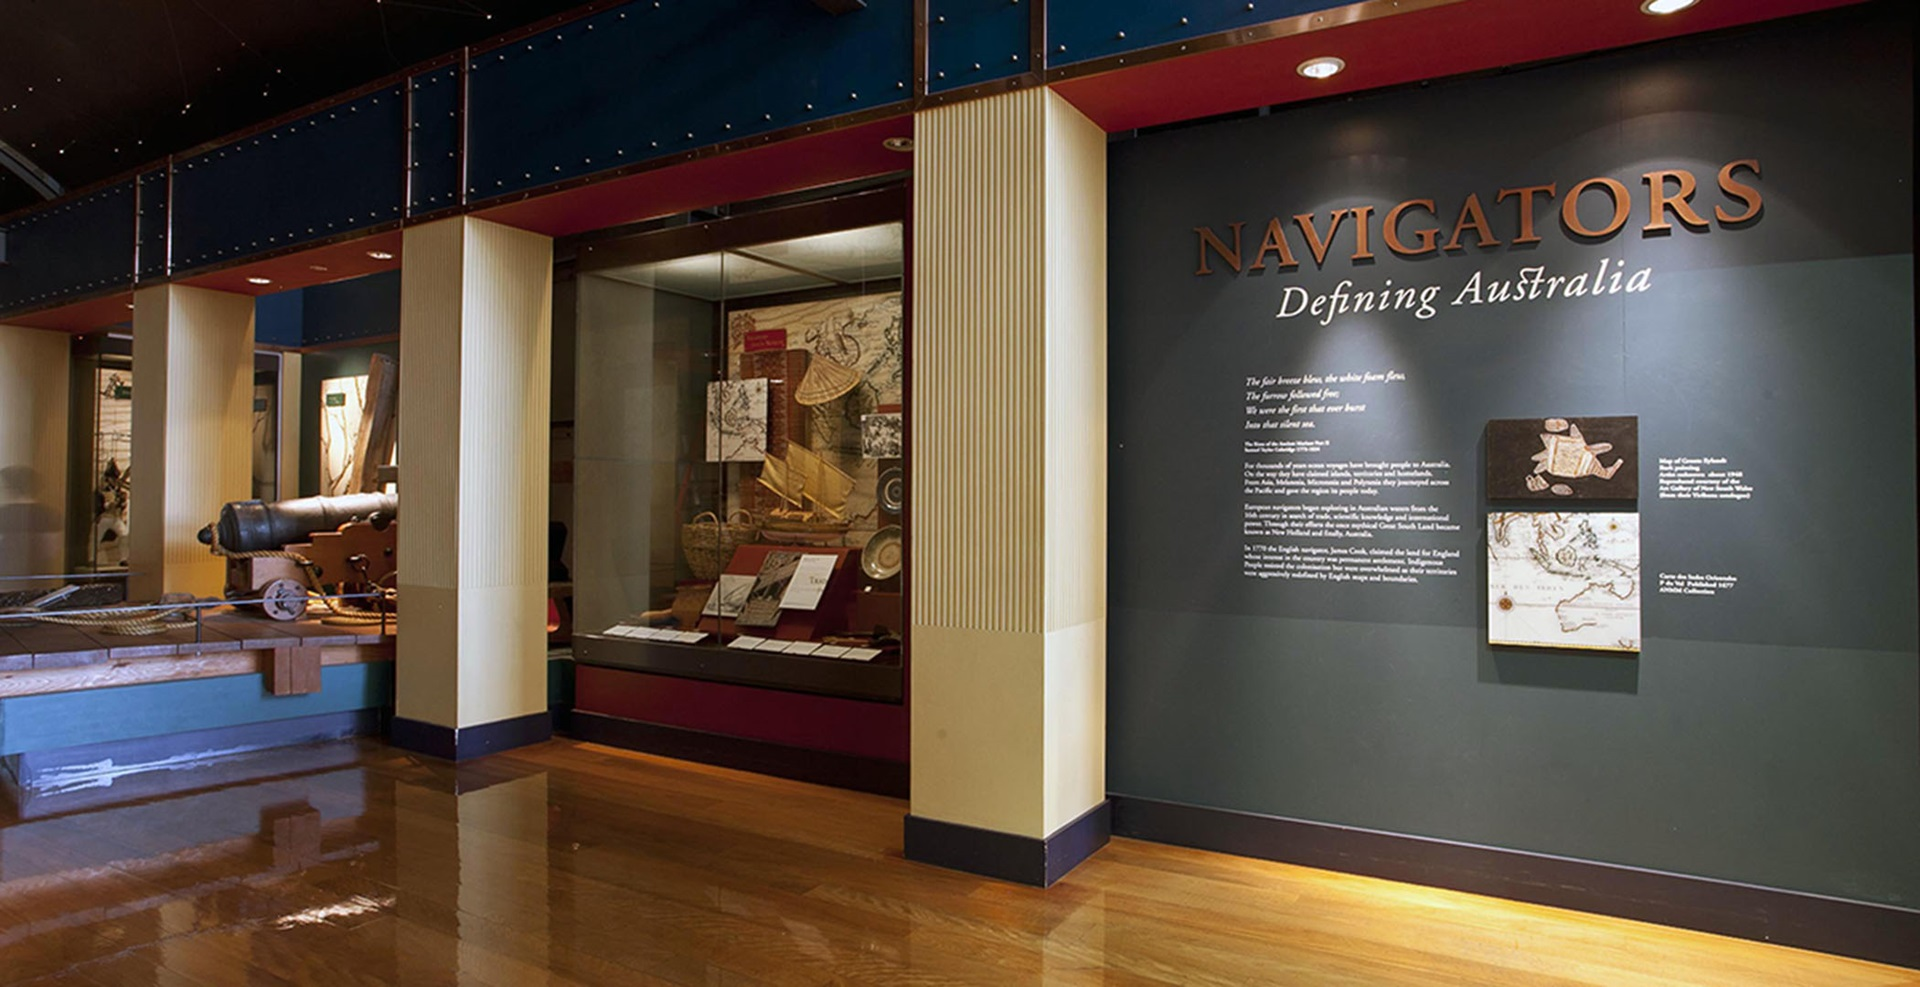 Exhibition space in the Navigators gallery at the Australian National Maritime Museum